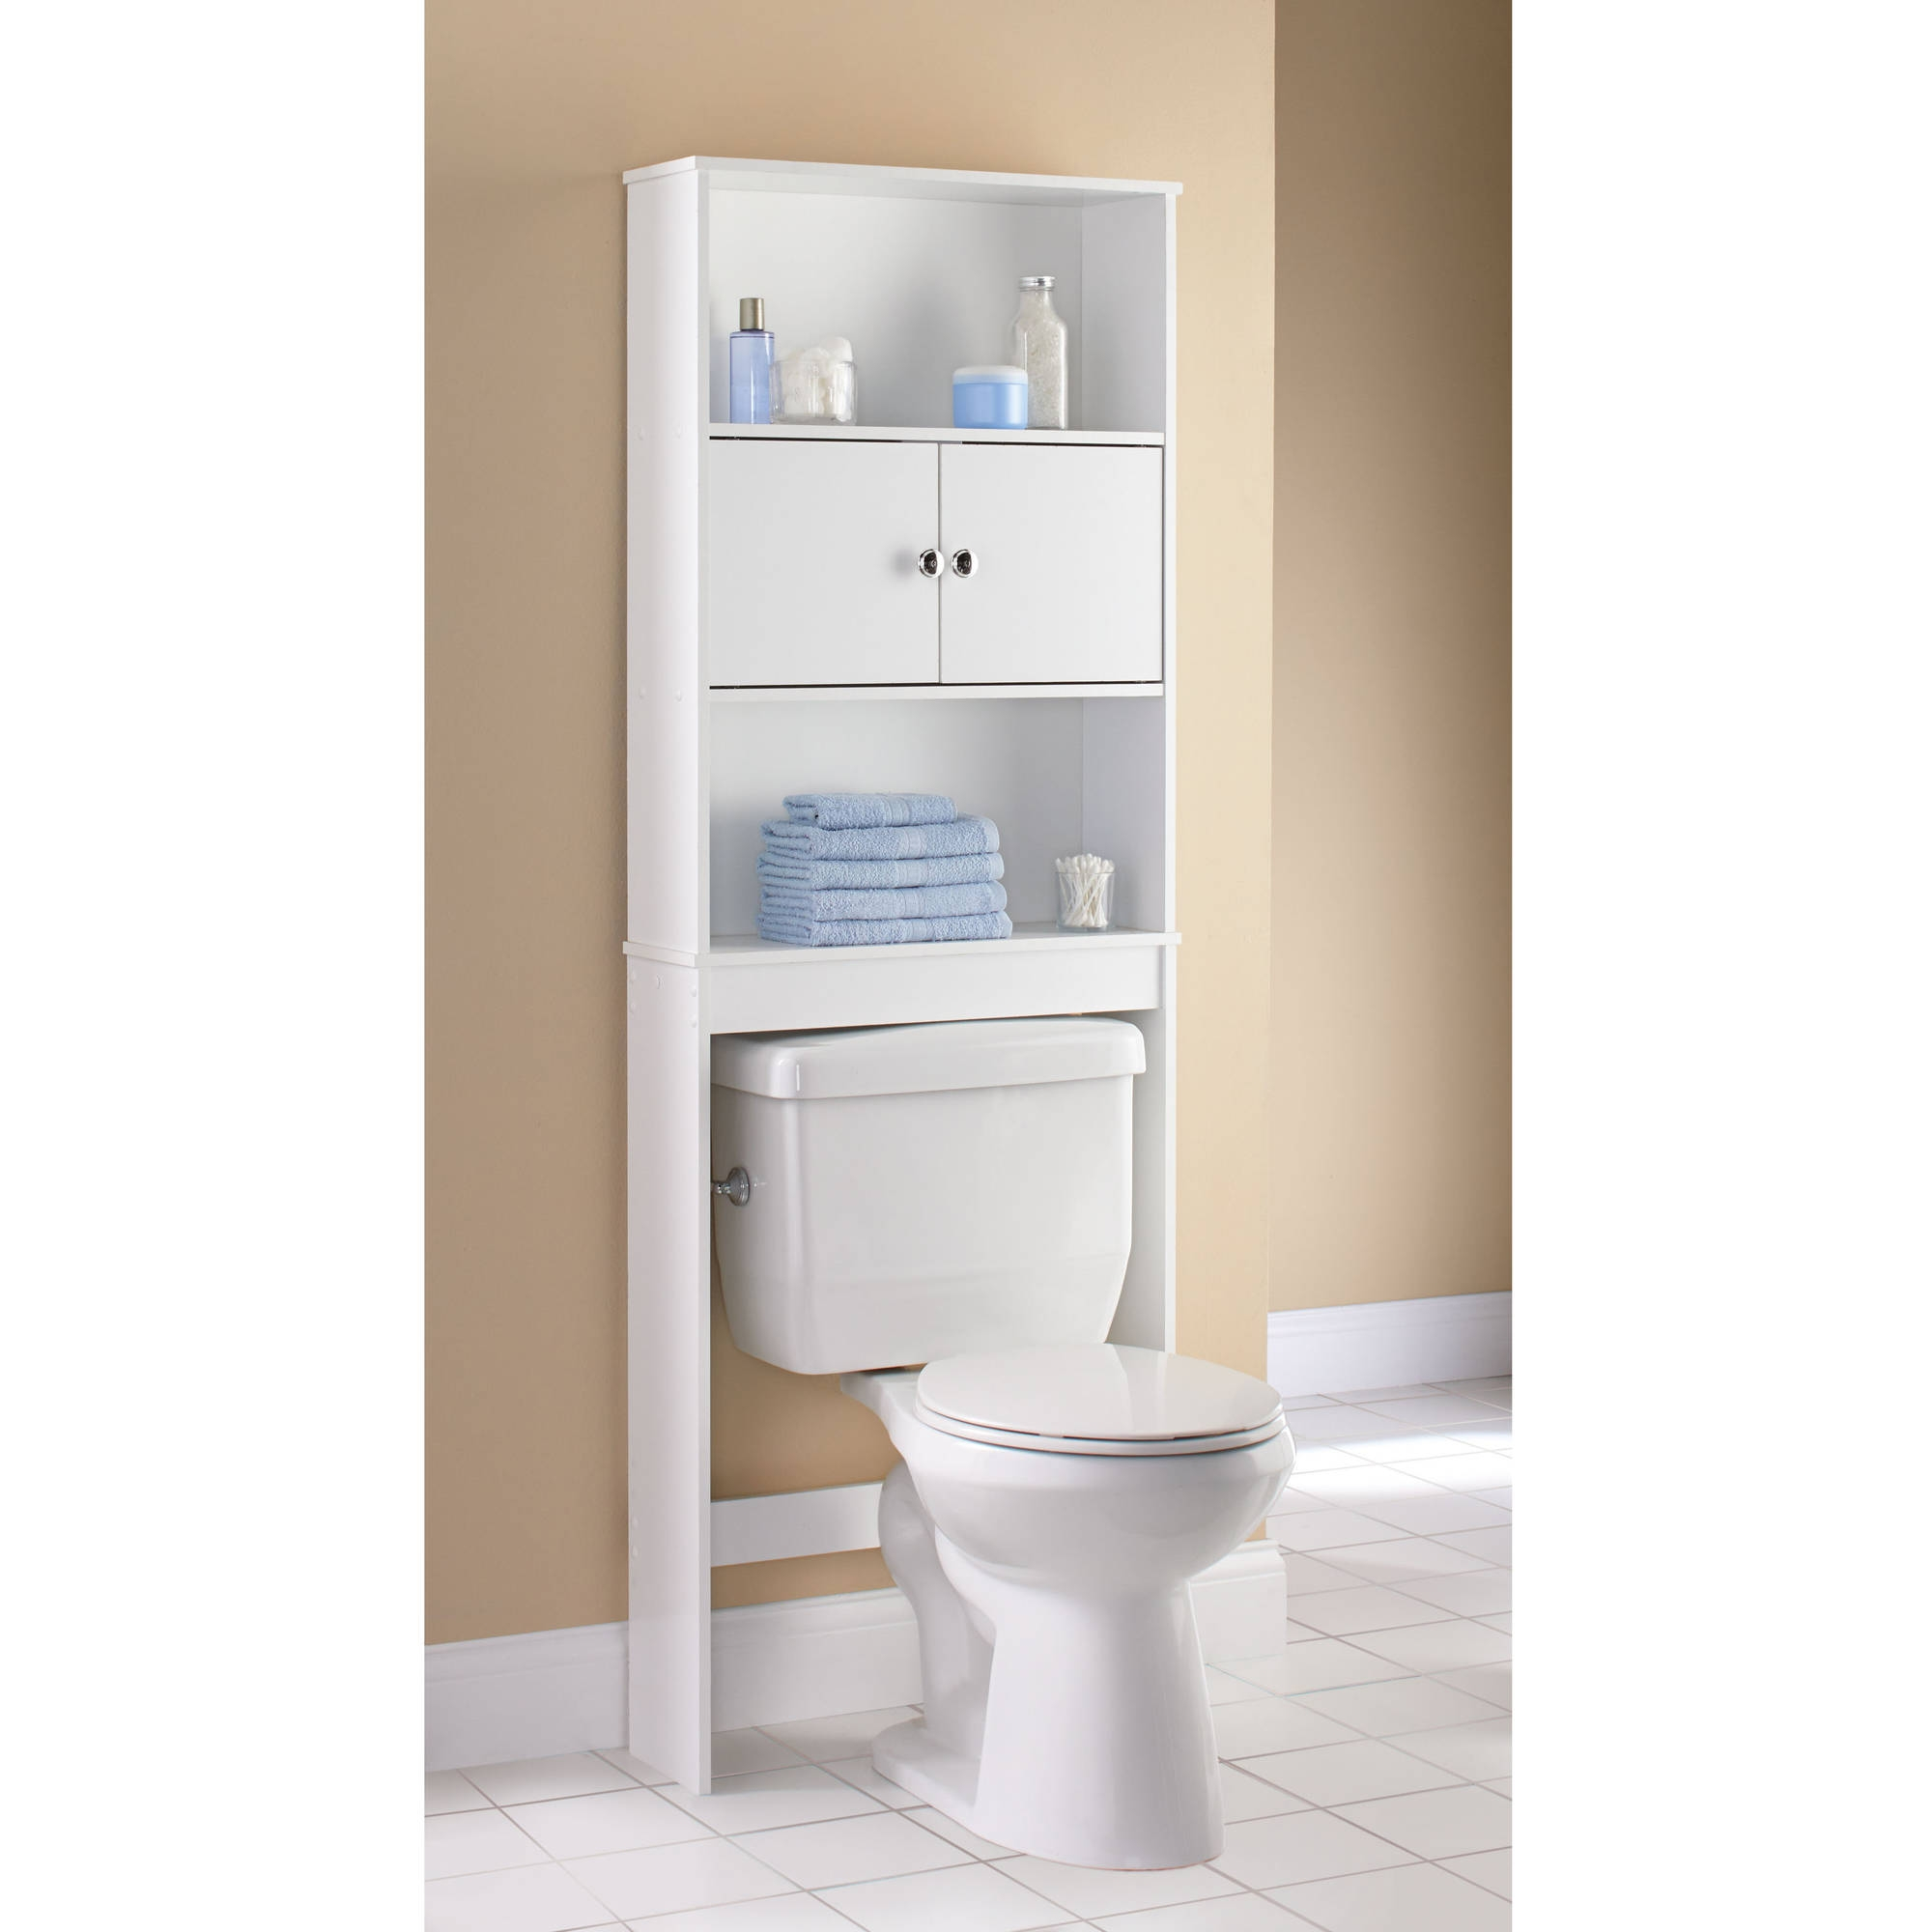 Mainstays 2 Cabinet Bathroom Space Saver Instructions2000 X 2000